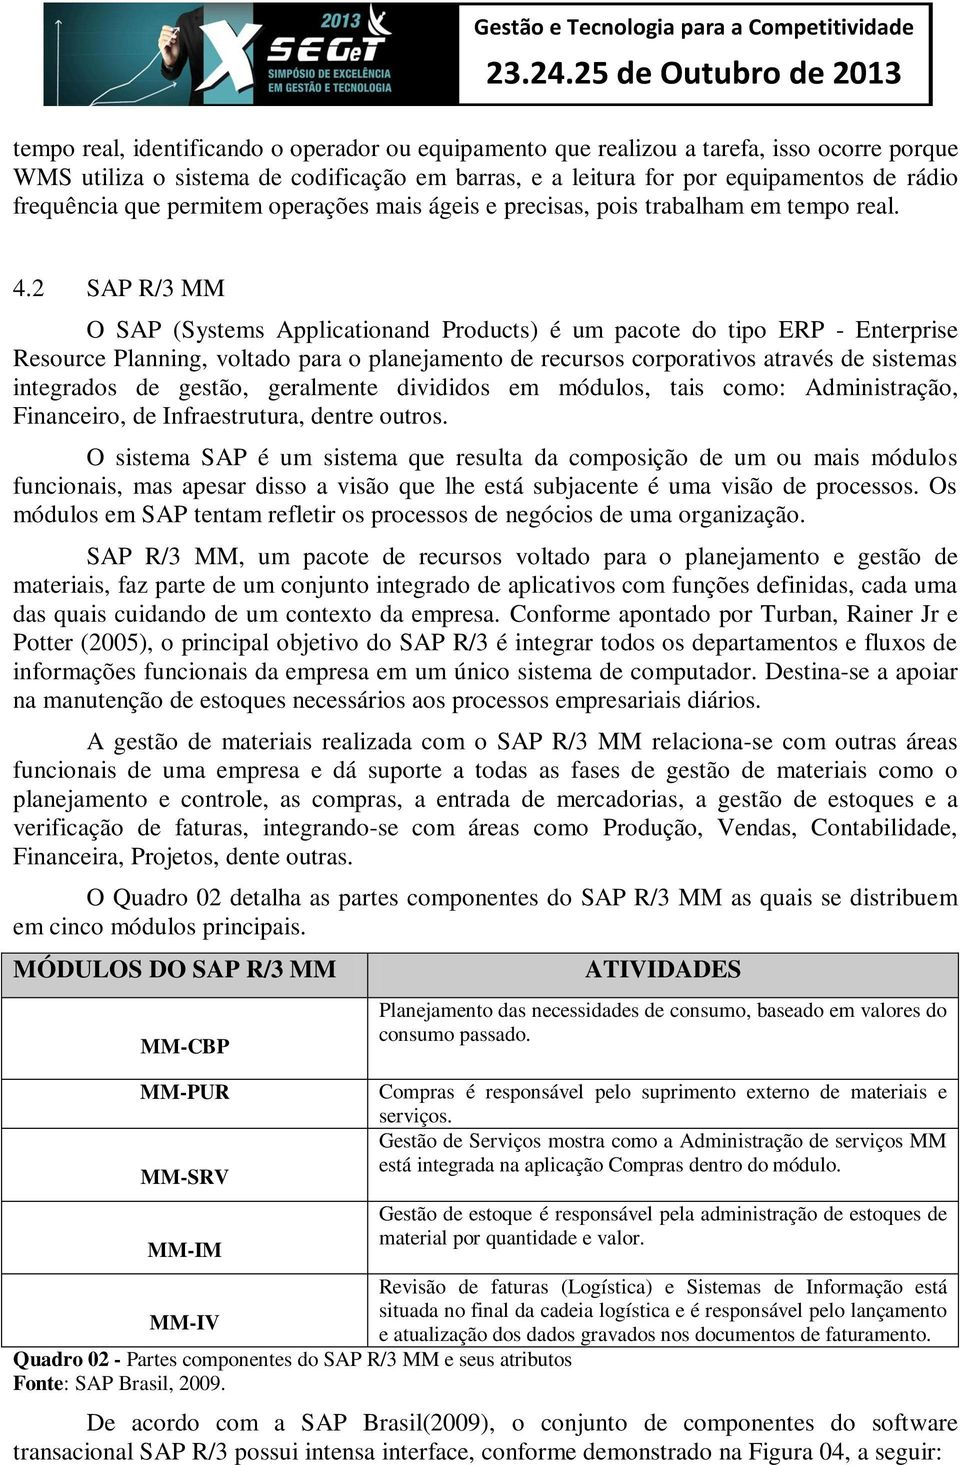 2 SAP R/3 MM O SAP (Systems Applicationand Products) é um pacote do tipo ERP - Enterprise Resource Planning, voltado para o planejamento de recursos corporativos através de sistemas integrados de